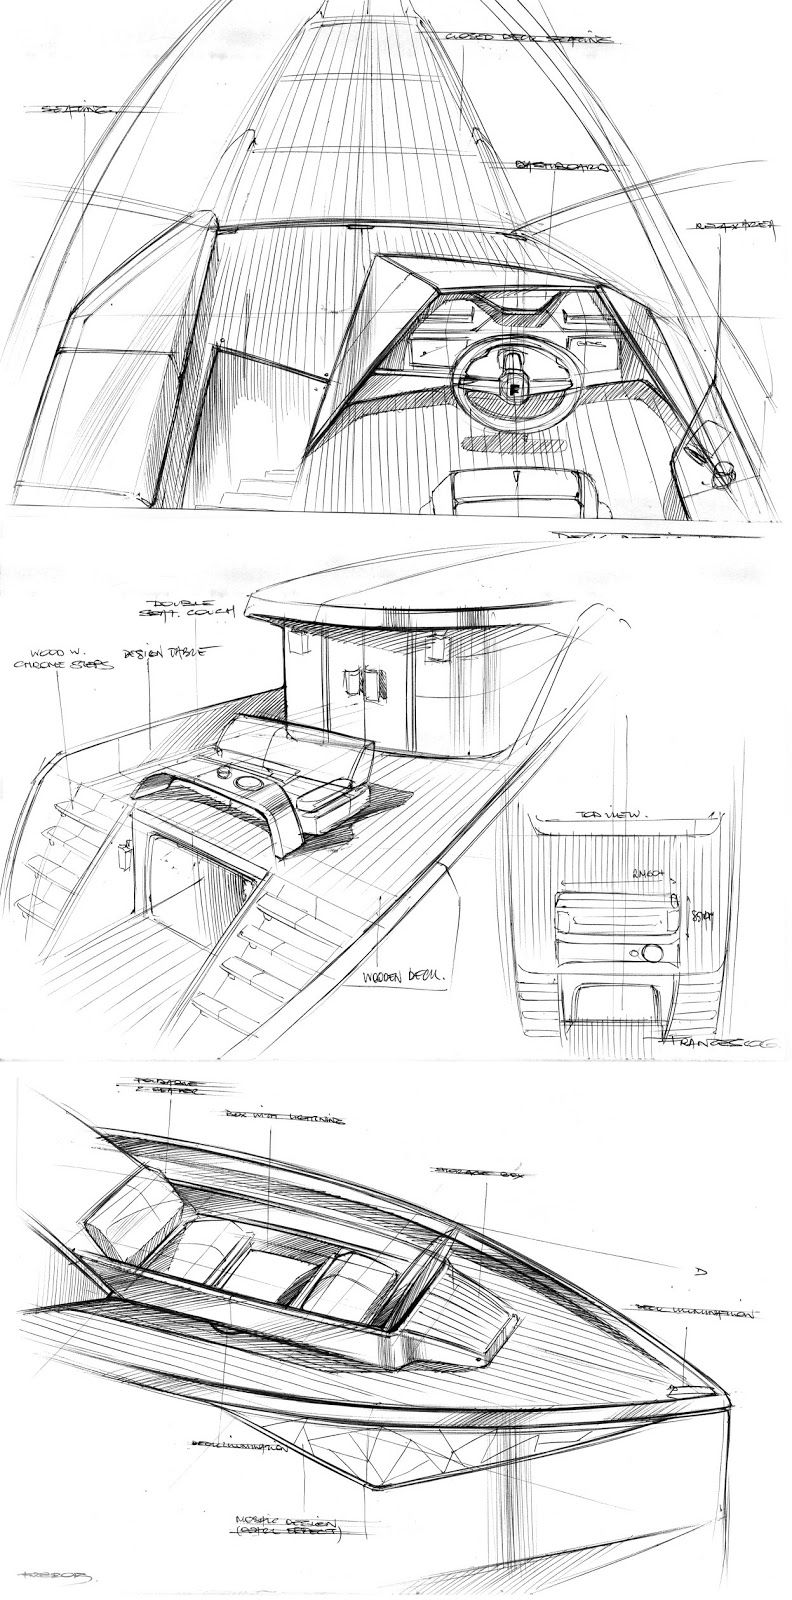 sketchtable+yacht+development.jpg (792×1600)